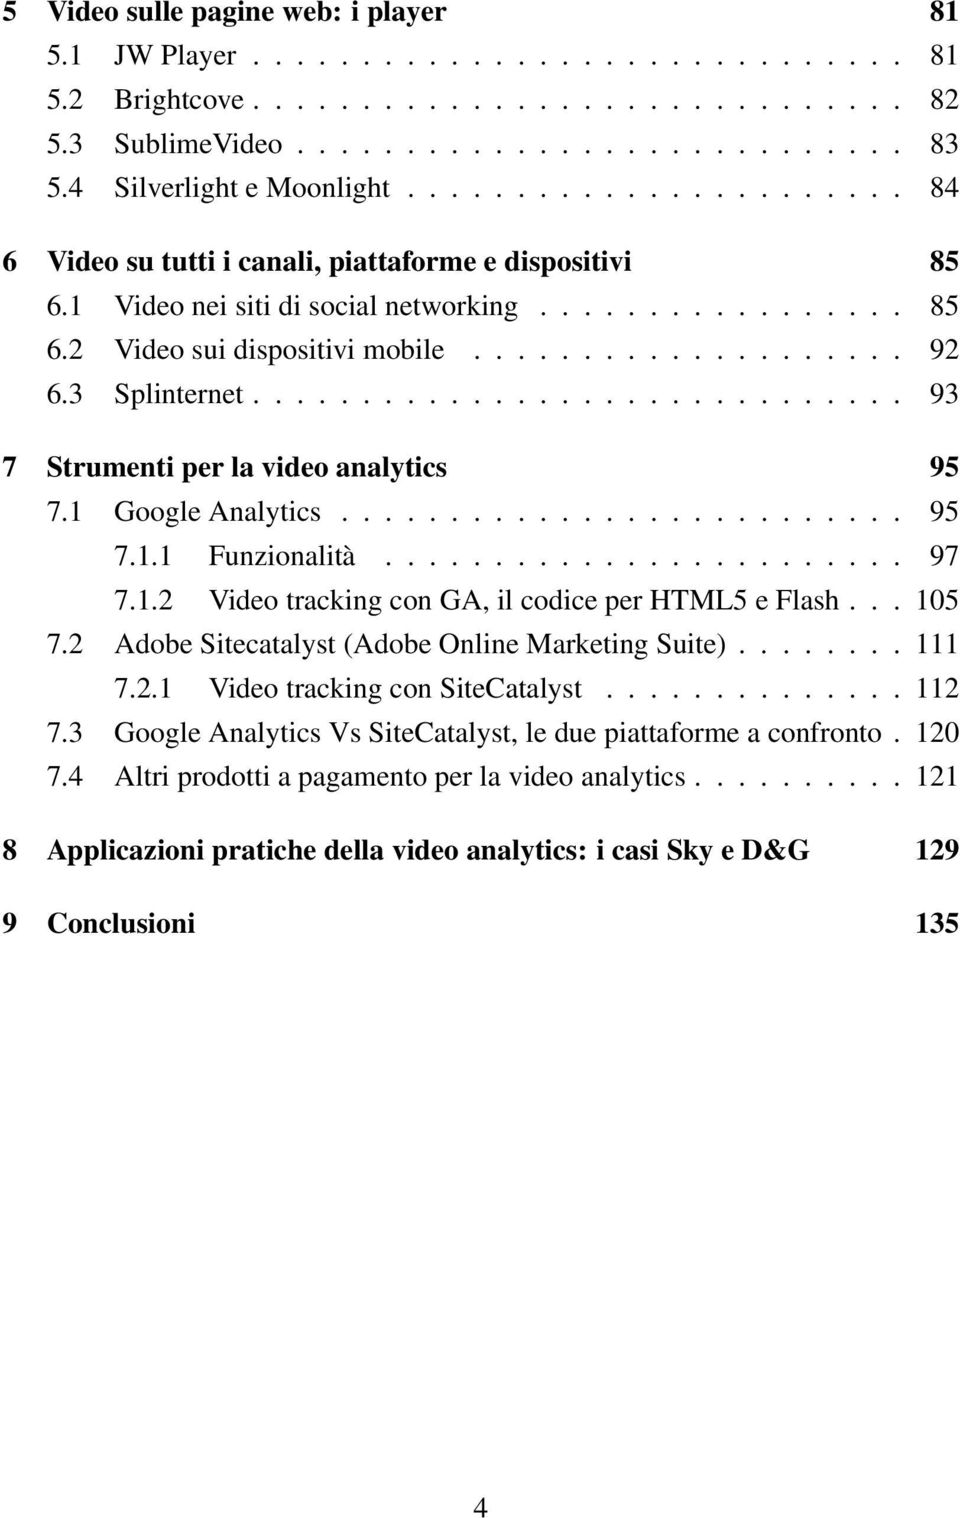 ................... 92 6.3 Splinternet.............................. 93 7 Strumenti per la video analytics 95 7.1 Google Analytics.......................... 95 7.1.1 Funzionalità........................ 97 7.